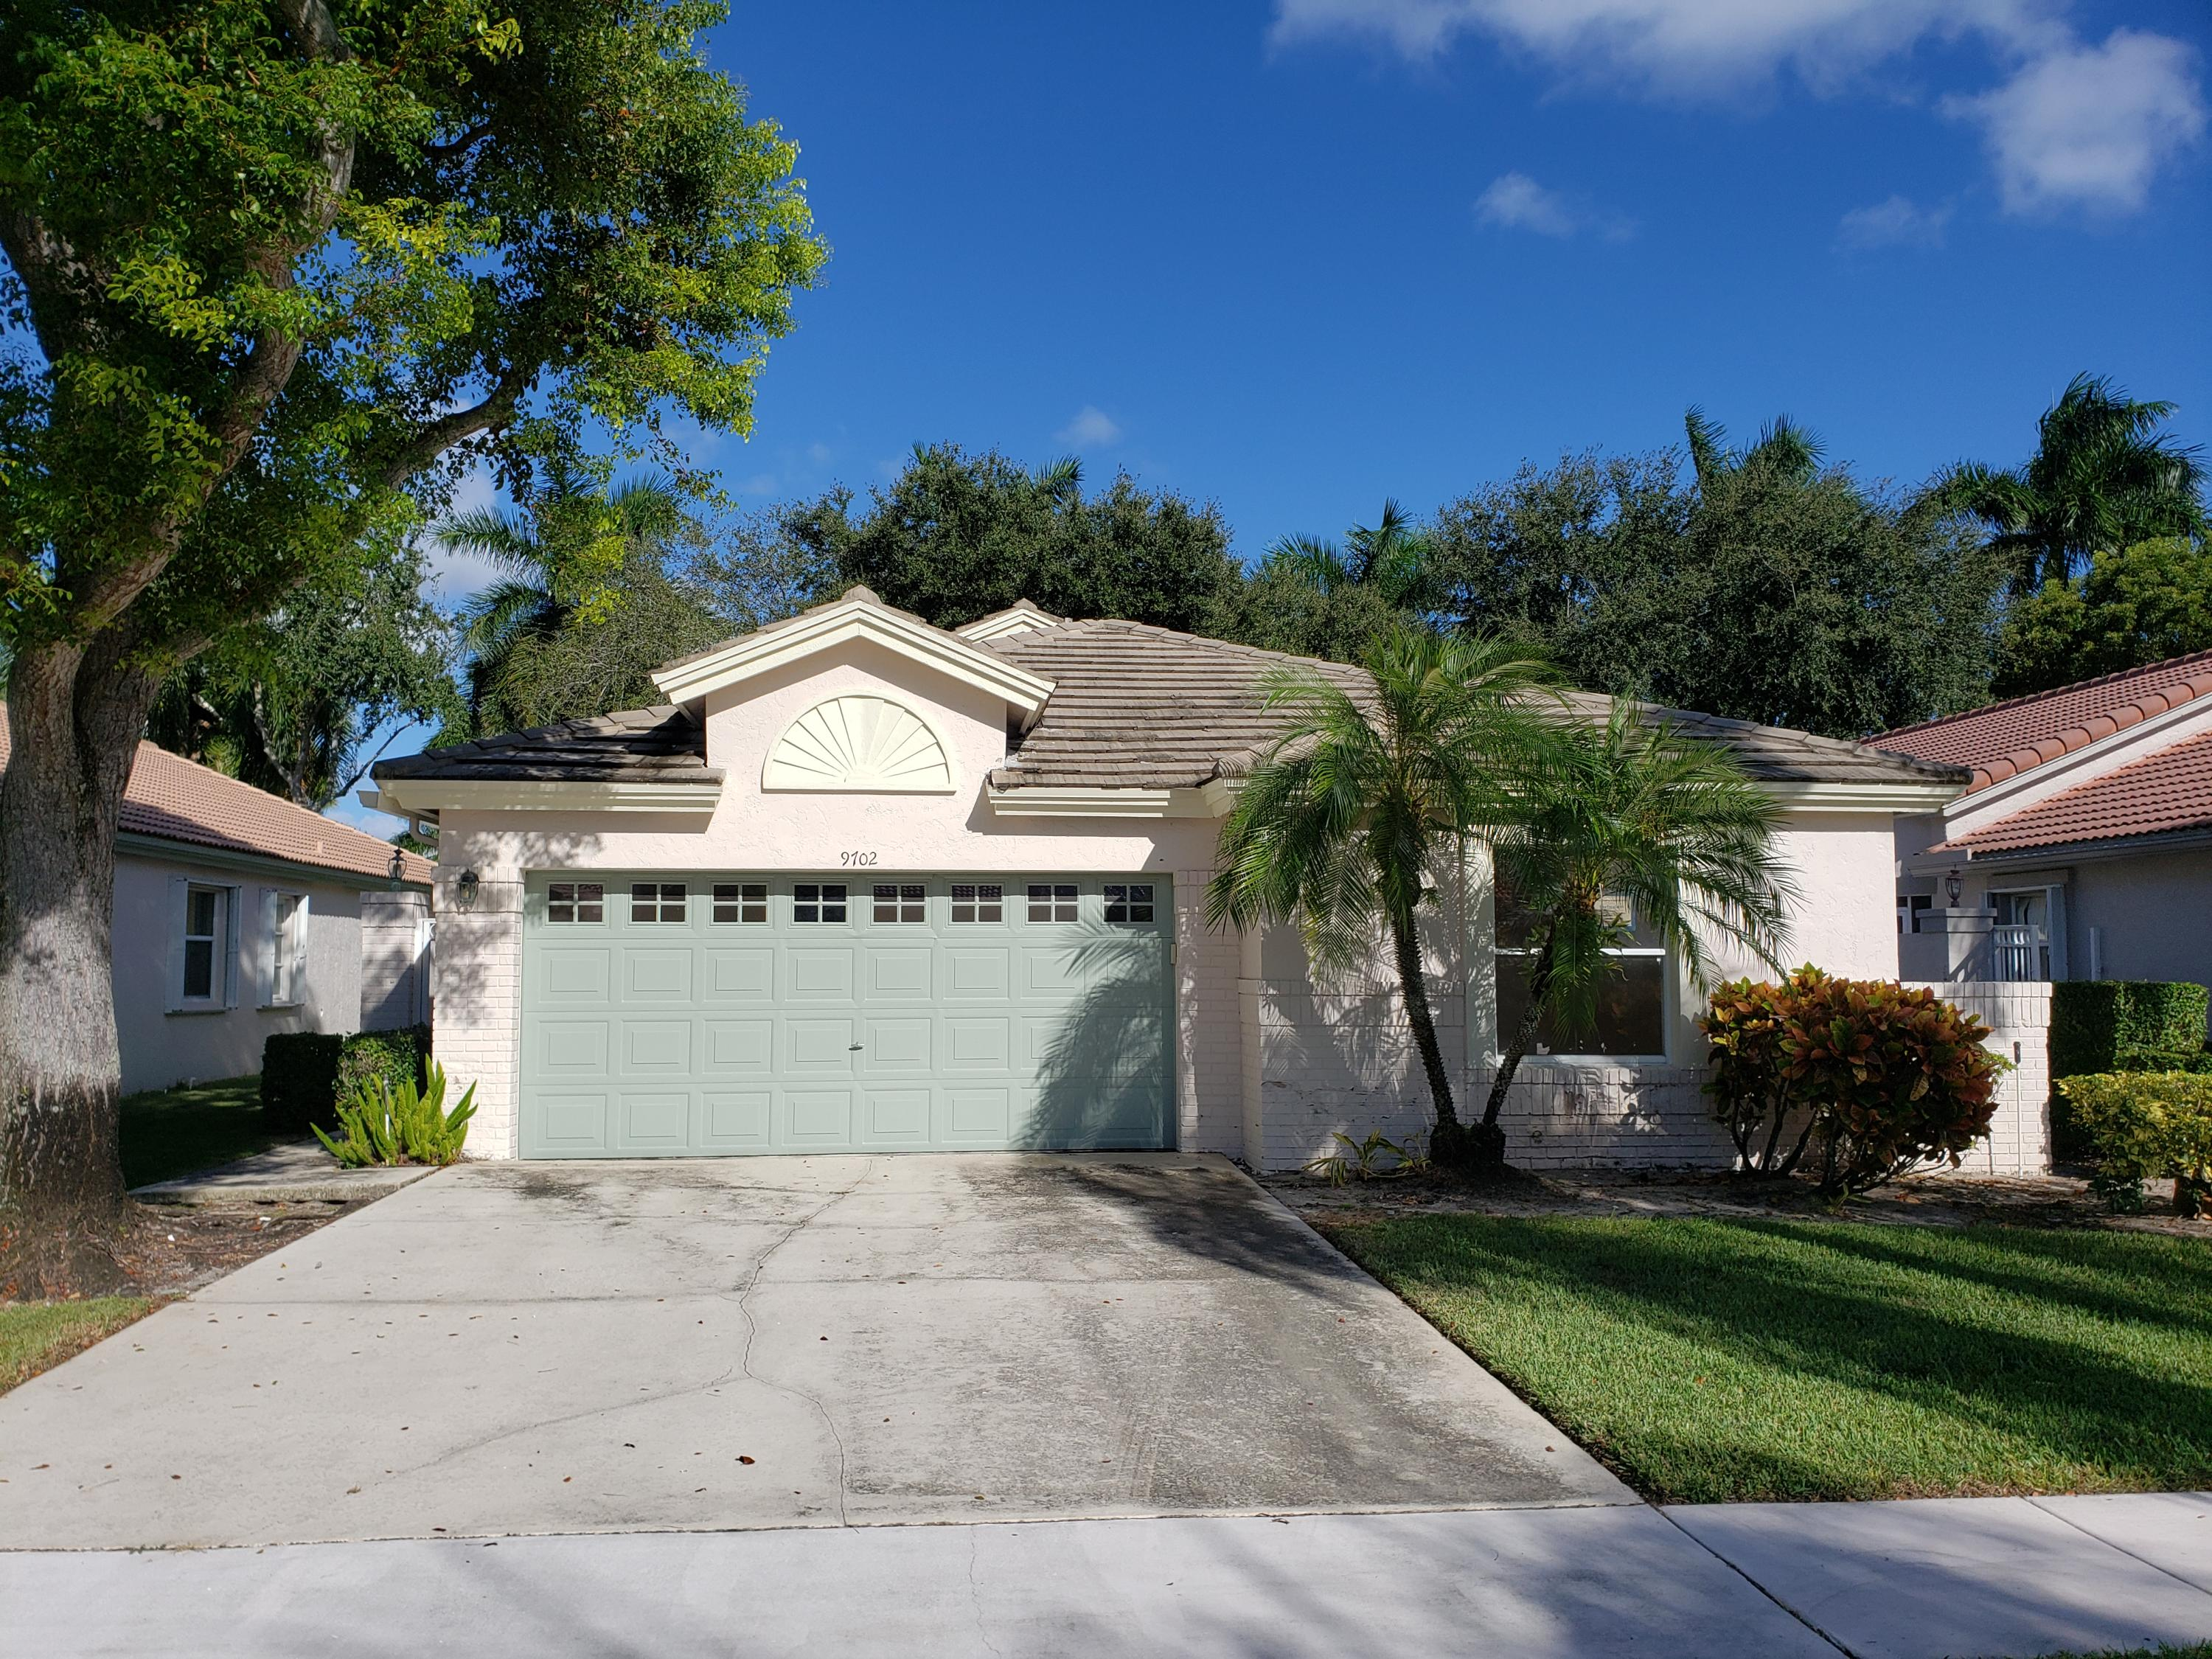 9702 Harbour Lake Circle  Boynton Beach, FL 33437